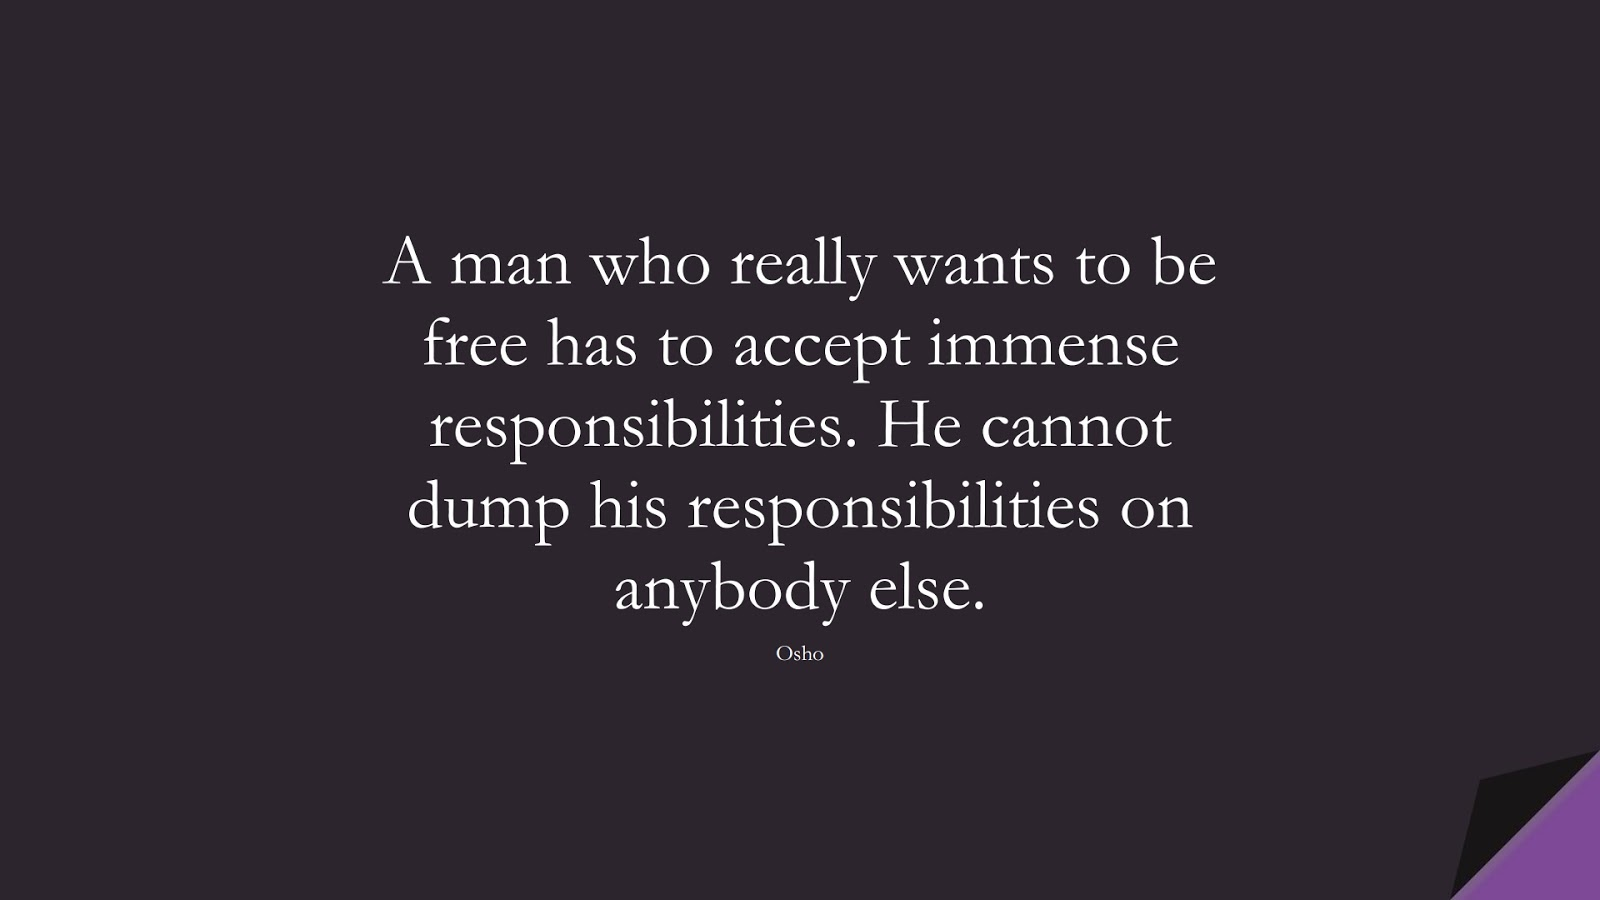 A man who really wants to be free has to accept immense responsibilities. He cannot dump his responsibilities on anybody else. (Osho);  #BestQuotes